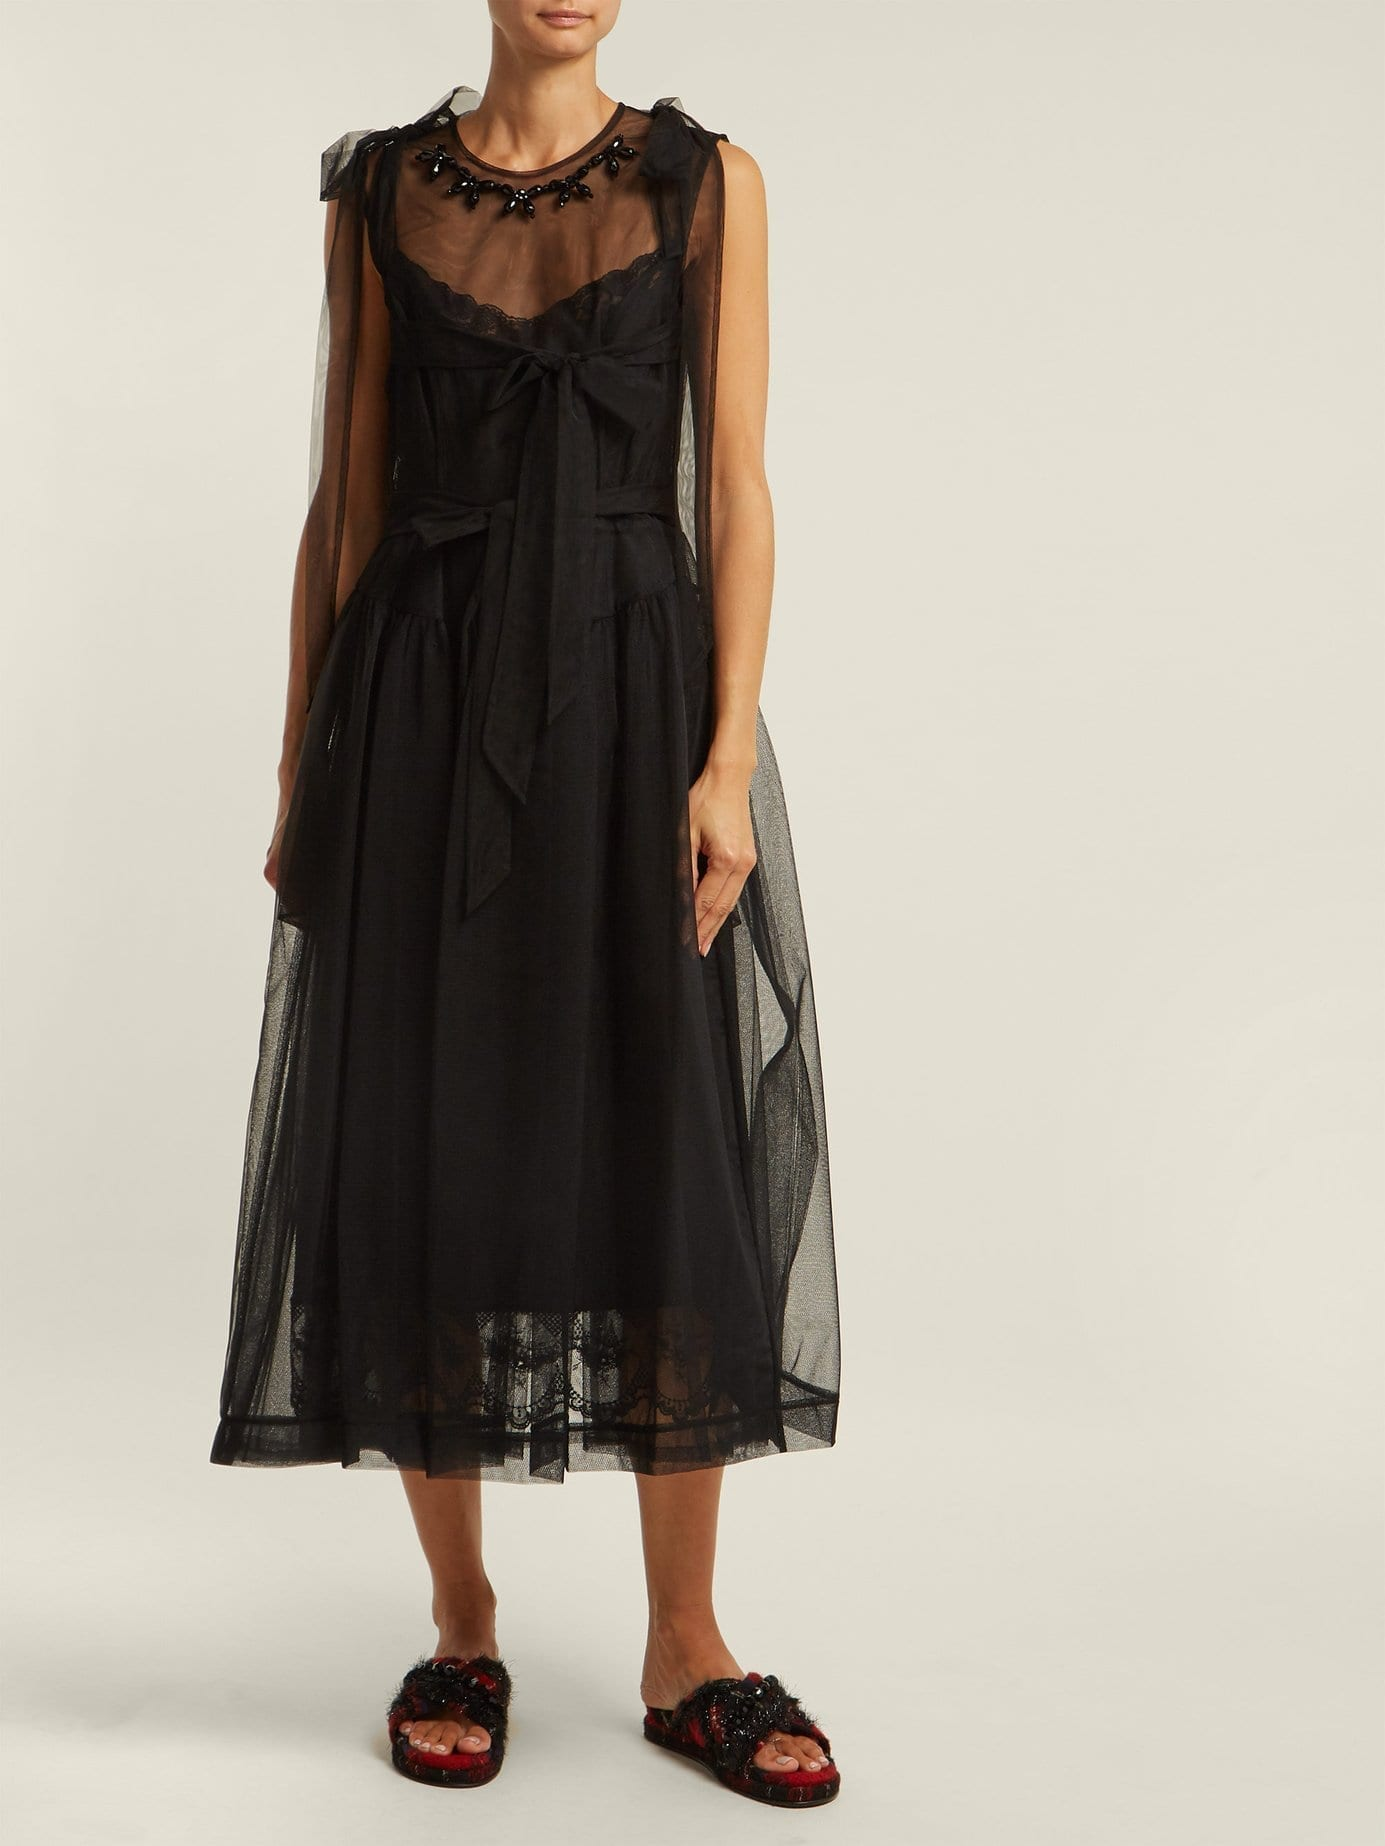 ab56268a6d SIMONE ROCHA Floral Bead Tulle Midi Black Dress - We Select Dresses